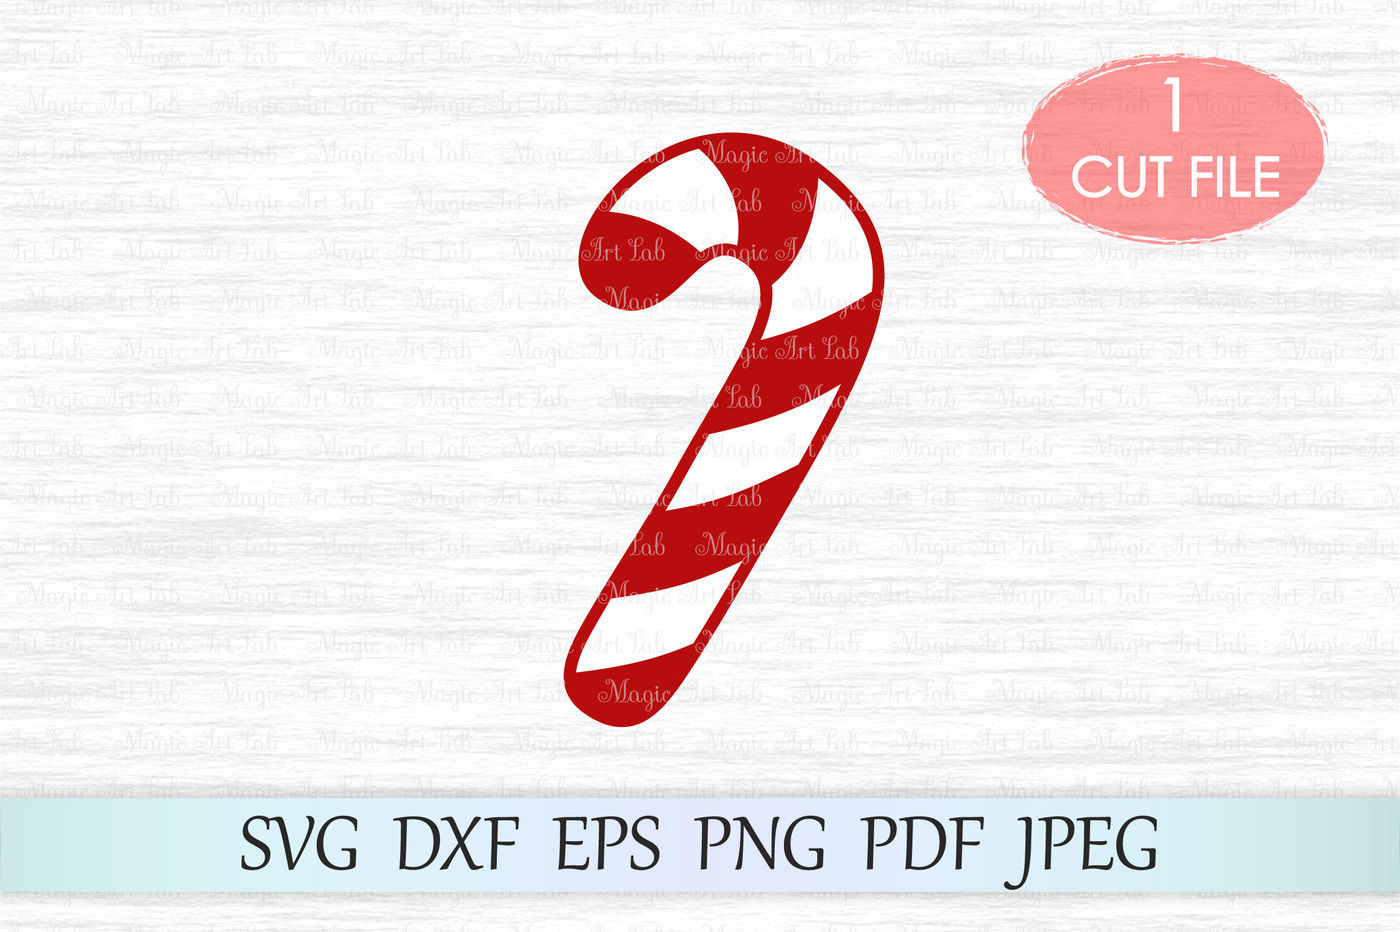 Candy Cane Svg Candy Svg Christmas Candy Svg Holiday Candy Svg File By Magicartlab Thehungryjpeg Com